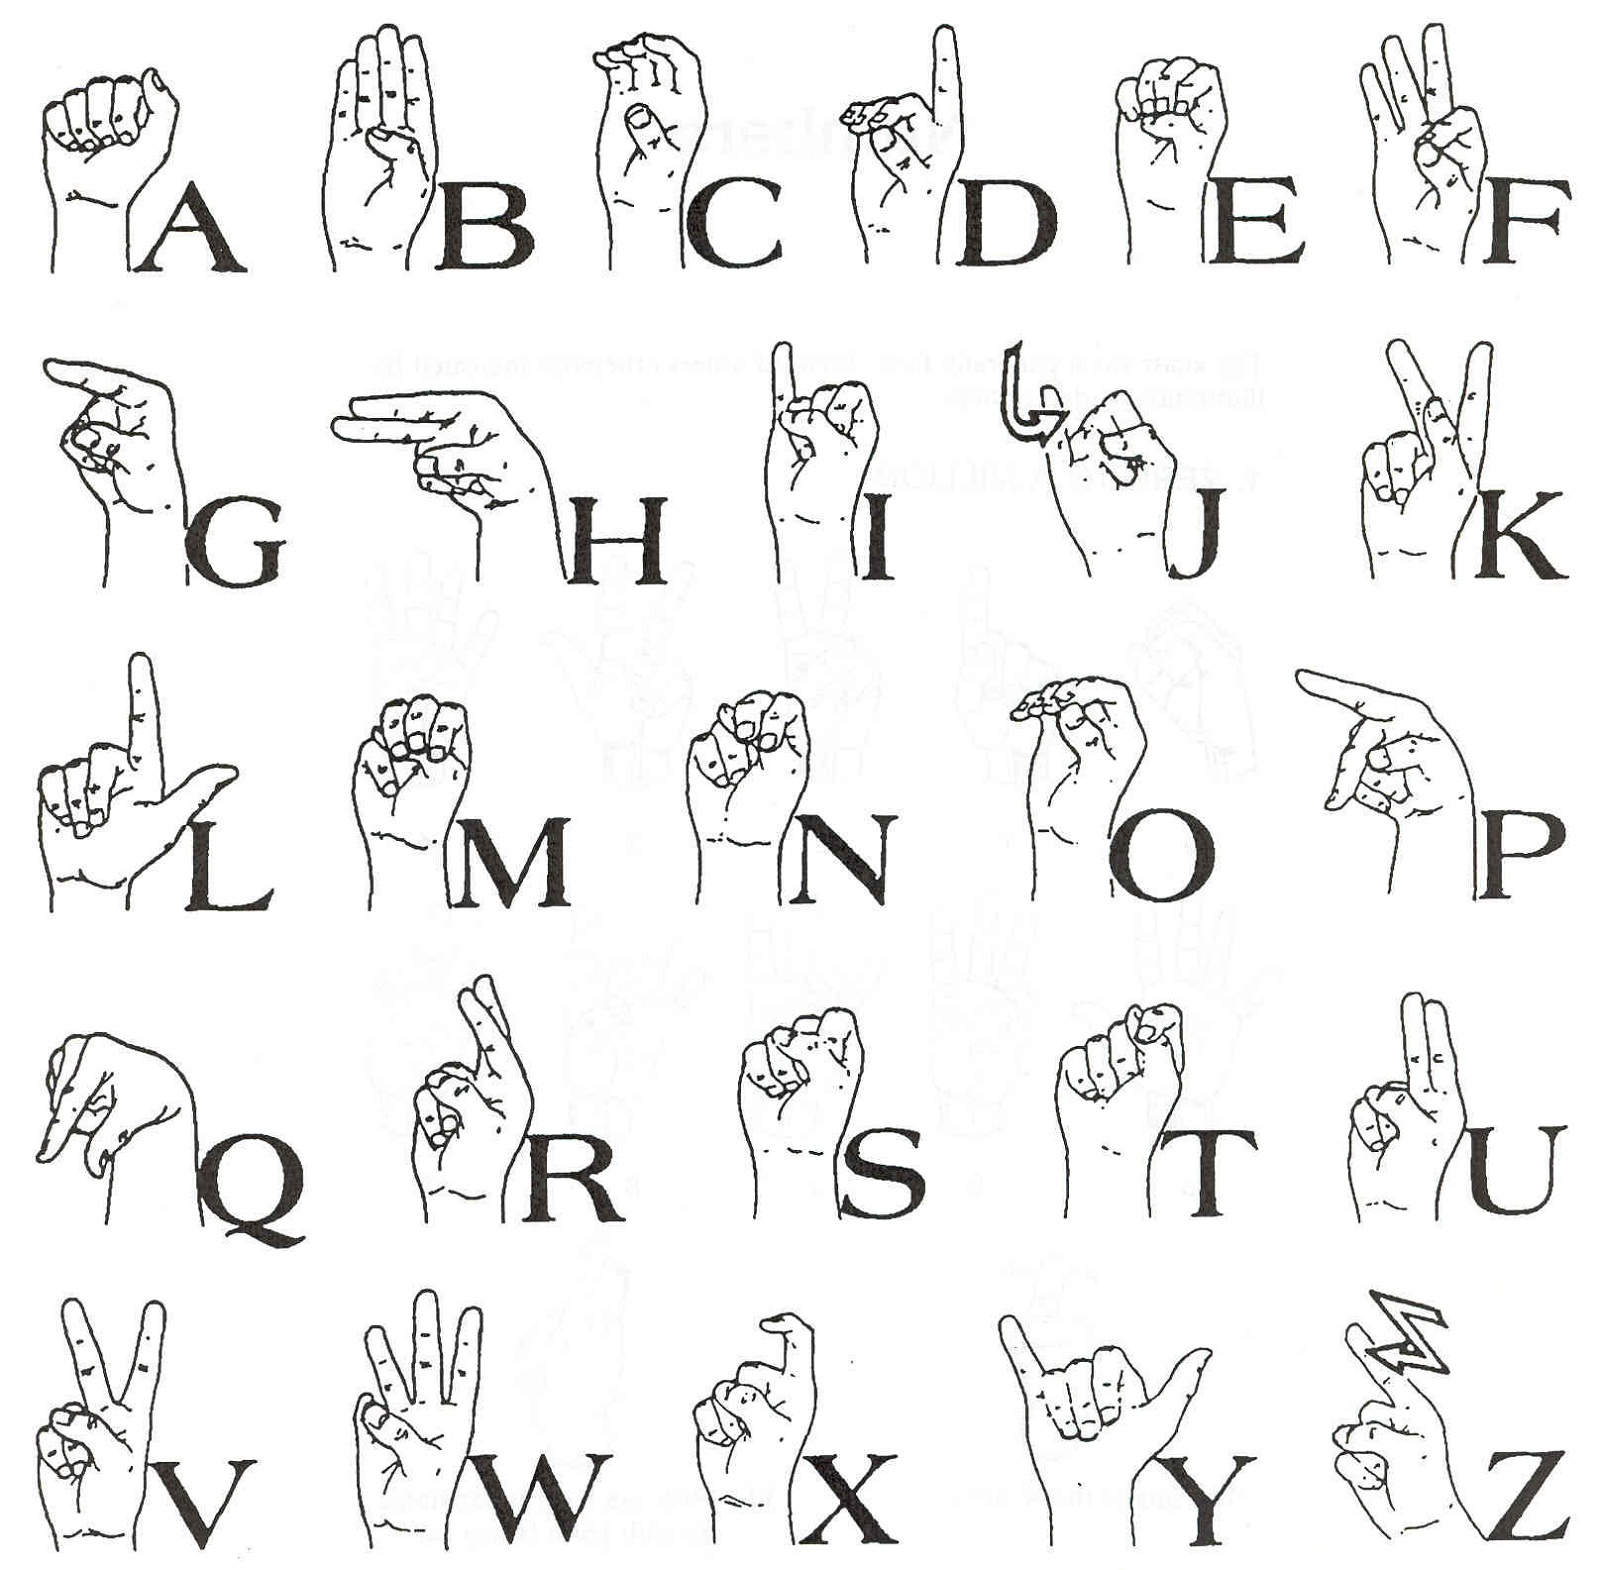 sign Language images educational